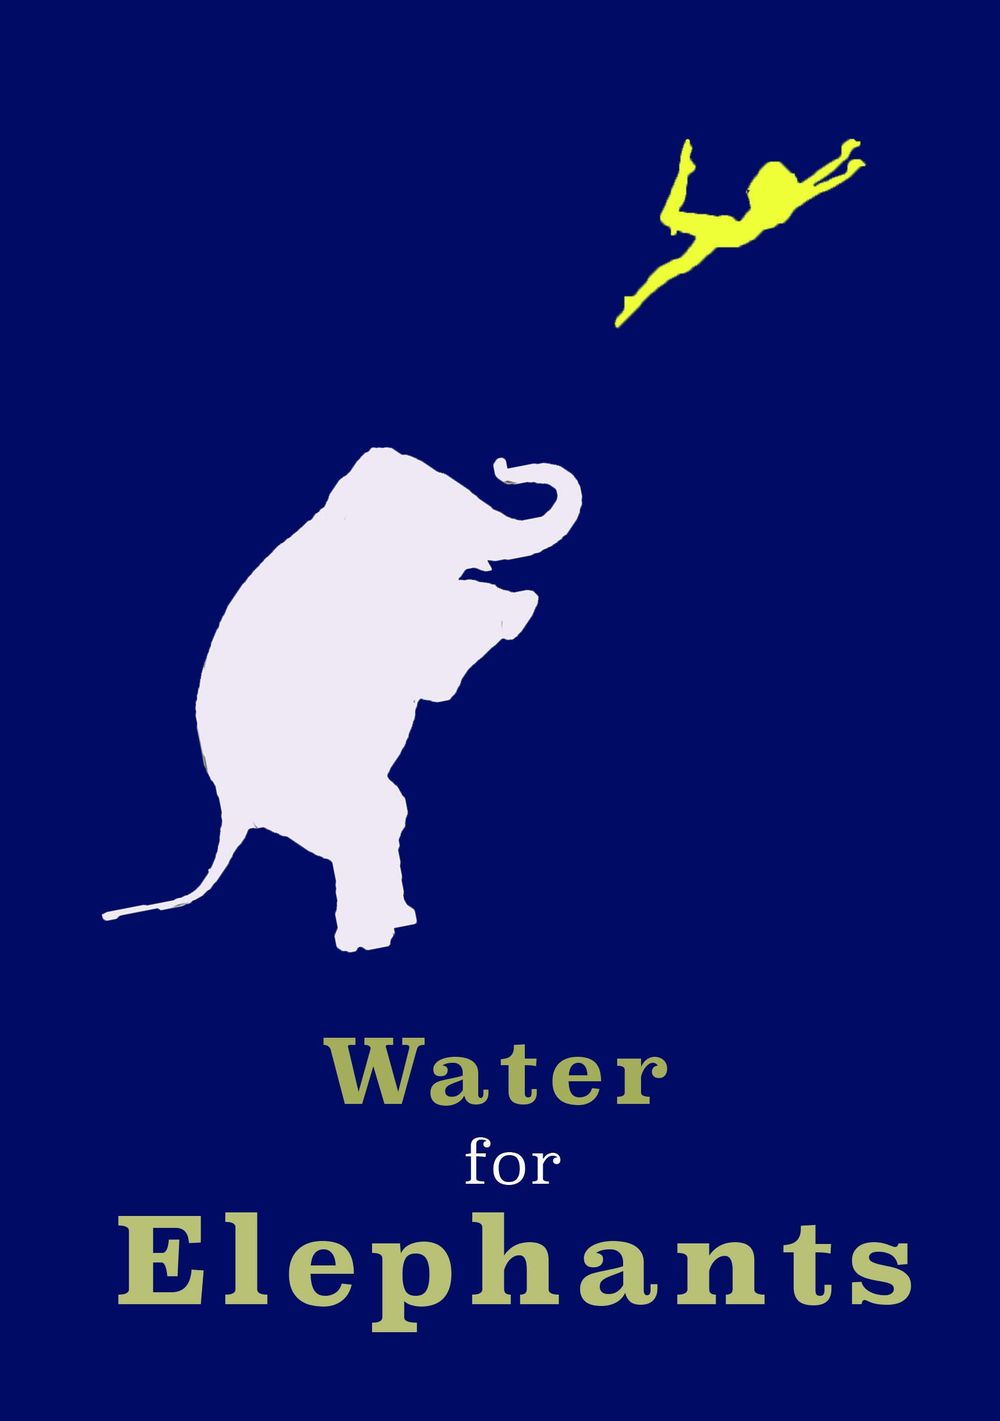 Water for Elephants - image 1 - student project